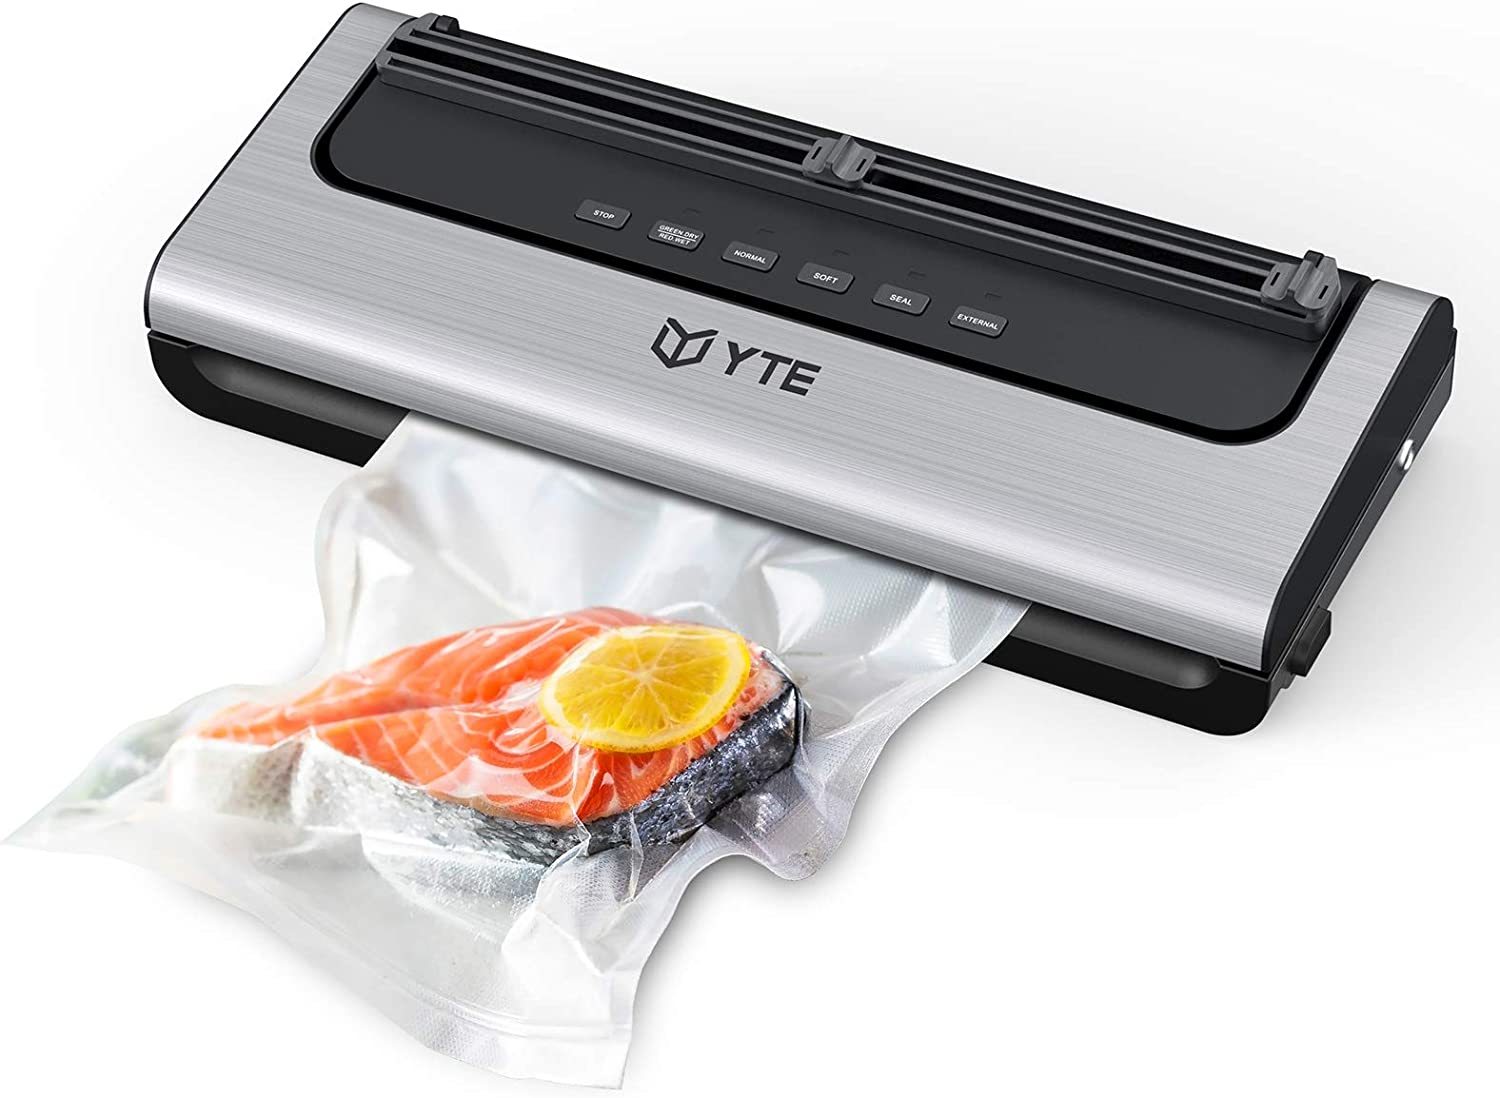 YTE Vacuum Sealer Machine, Automatic Food Saver with Dry & Moist Food Modes, Easy to Clean, Portable Vacuum Sealing Machine with Cutter & 10 Vacuum Bags